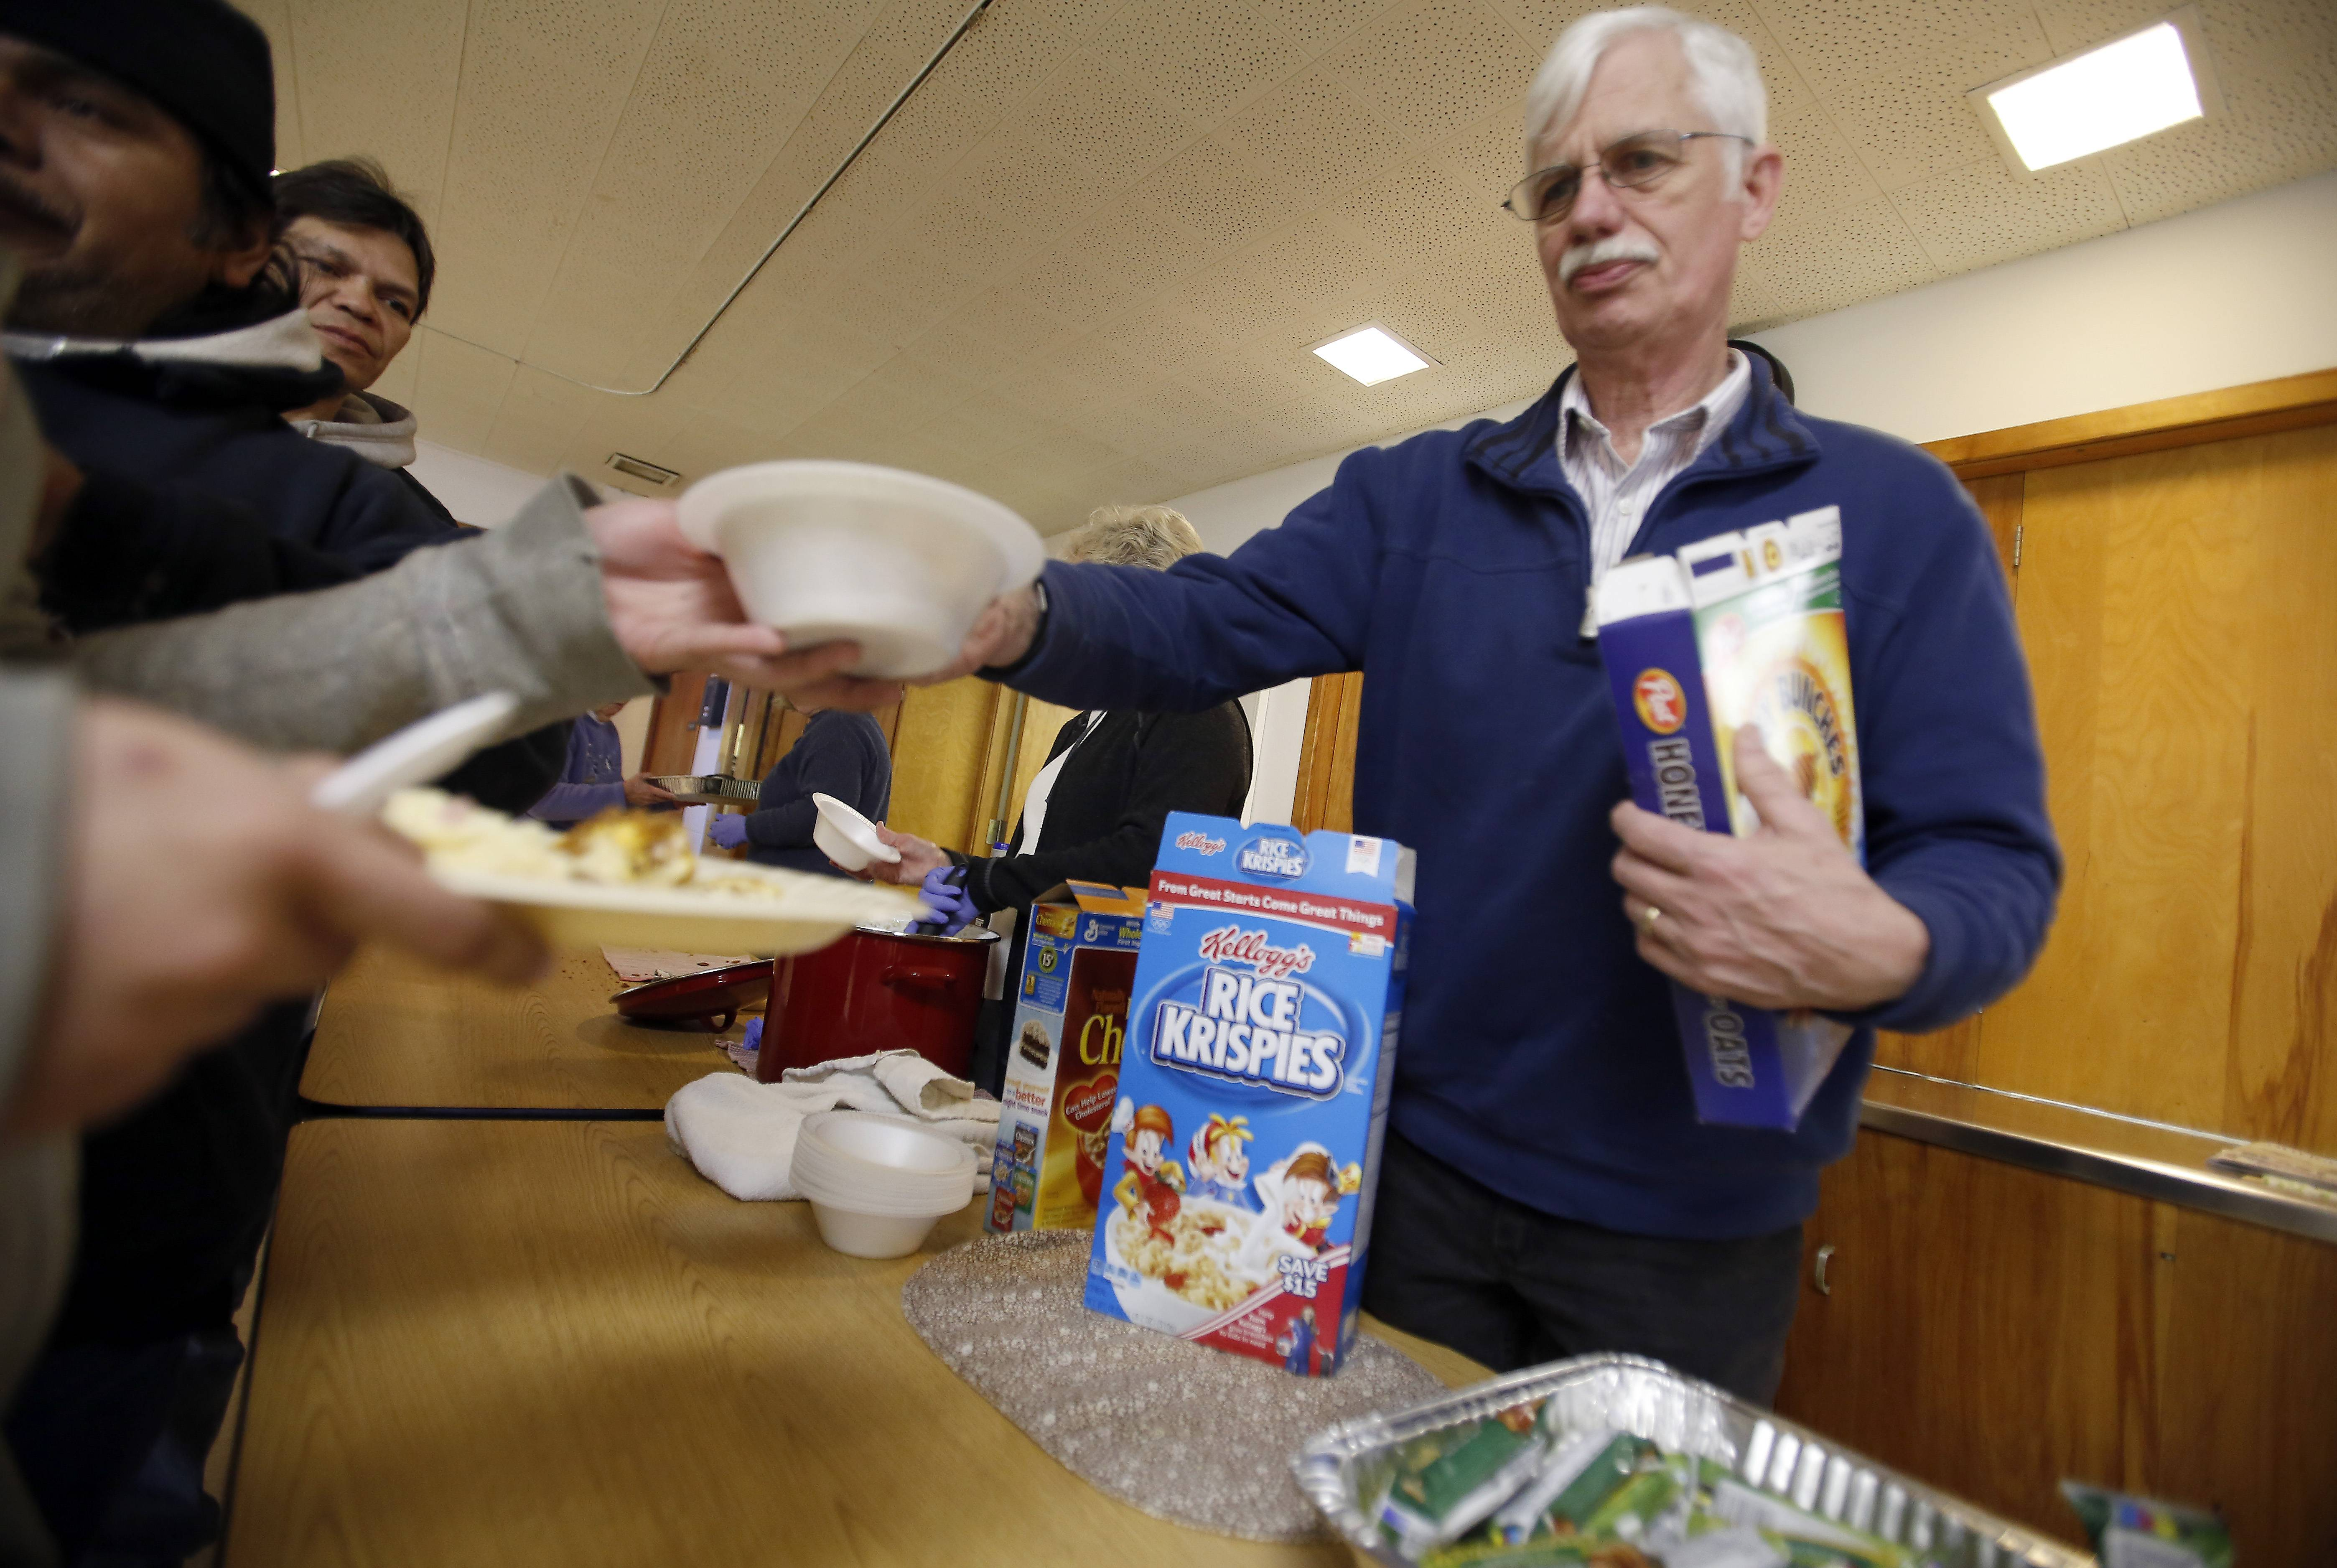 Gene Heckenberg of Algonquin hands out some cereal at a recent Vineyard Church community breakfast. In addition to helping with the meal, Heckenberg leads Bible studies, teaches computer classes, serves as a court advocate, and drives people to doctor appointments.